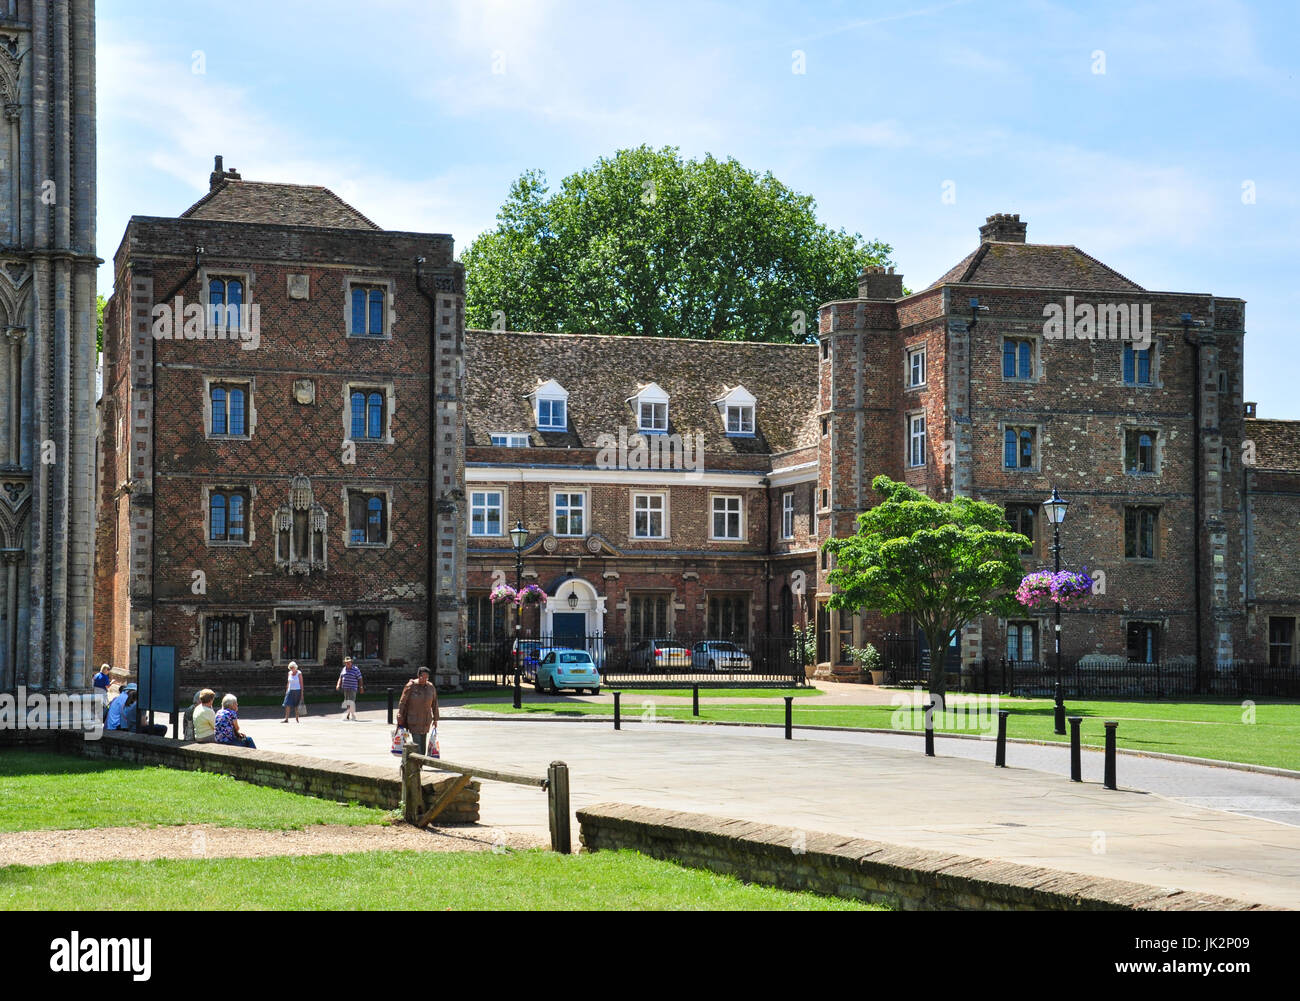 The Old Palace (now part of Ely King's School), Palace green, Ely, Cambridgeshire, England, UK - Stock Image